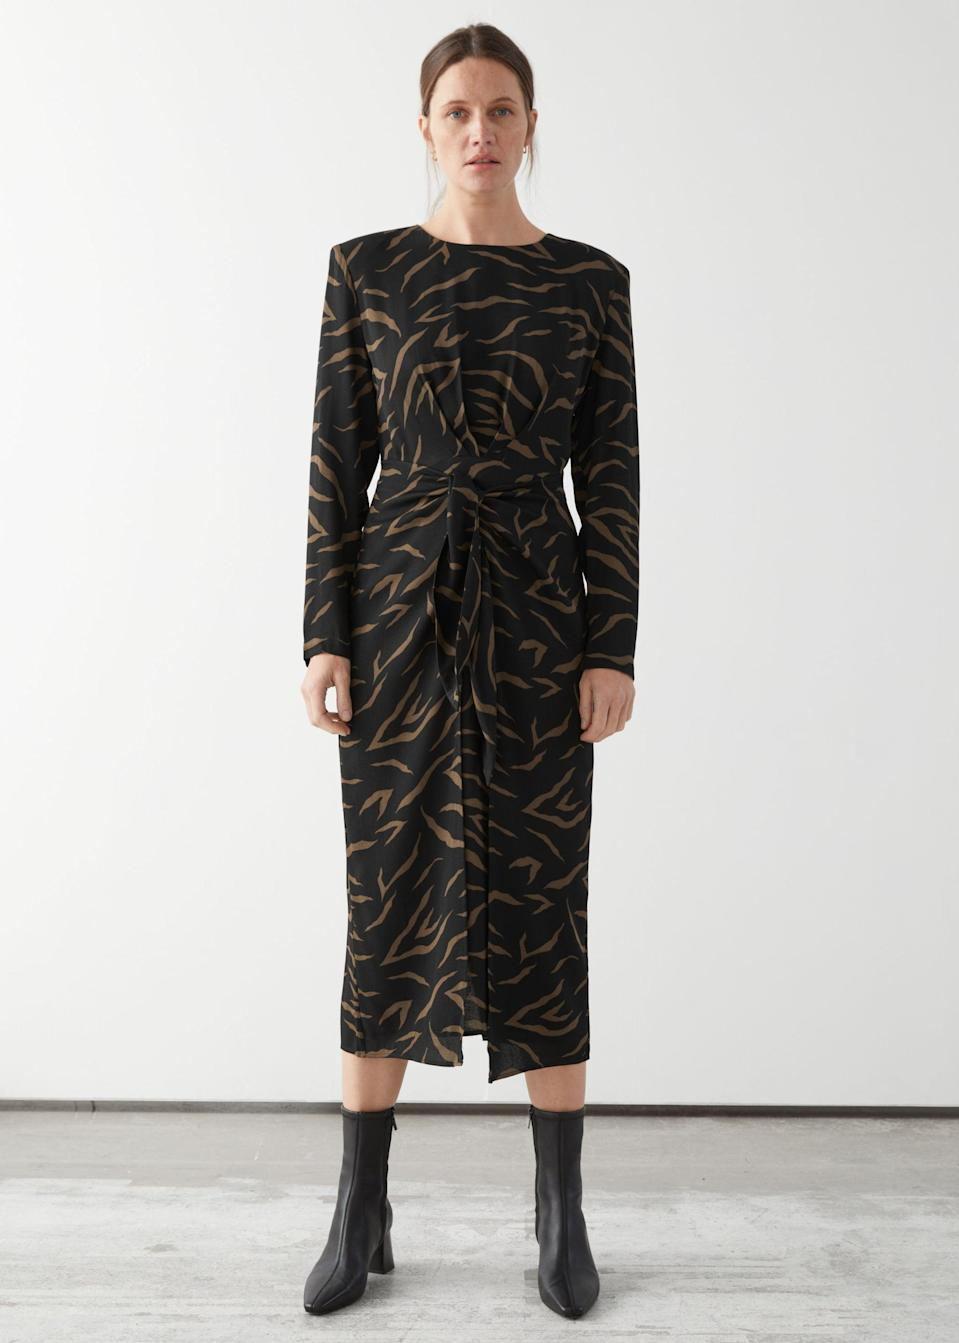 <p>This <span>&amp; Other Stories Midi Slit Wrap Dress</span> ($64, originally $129) will take you from the office to happy hour in style.</p>